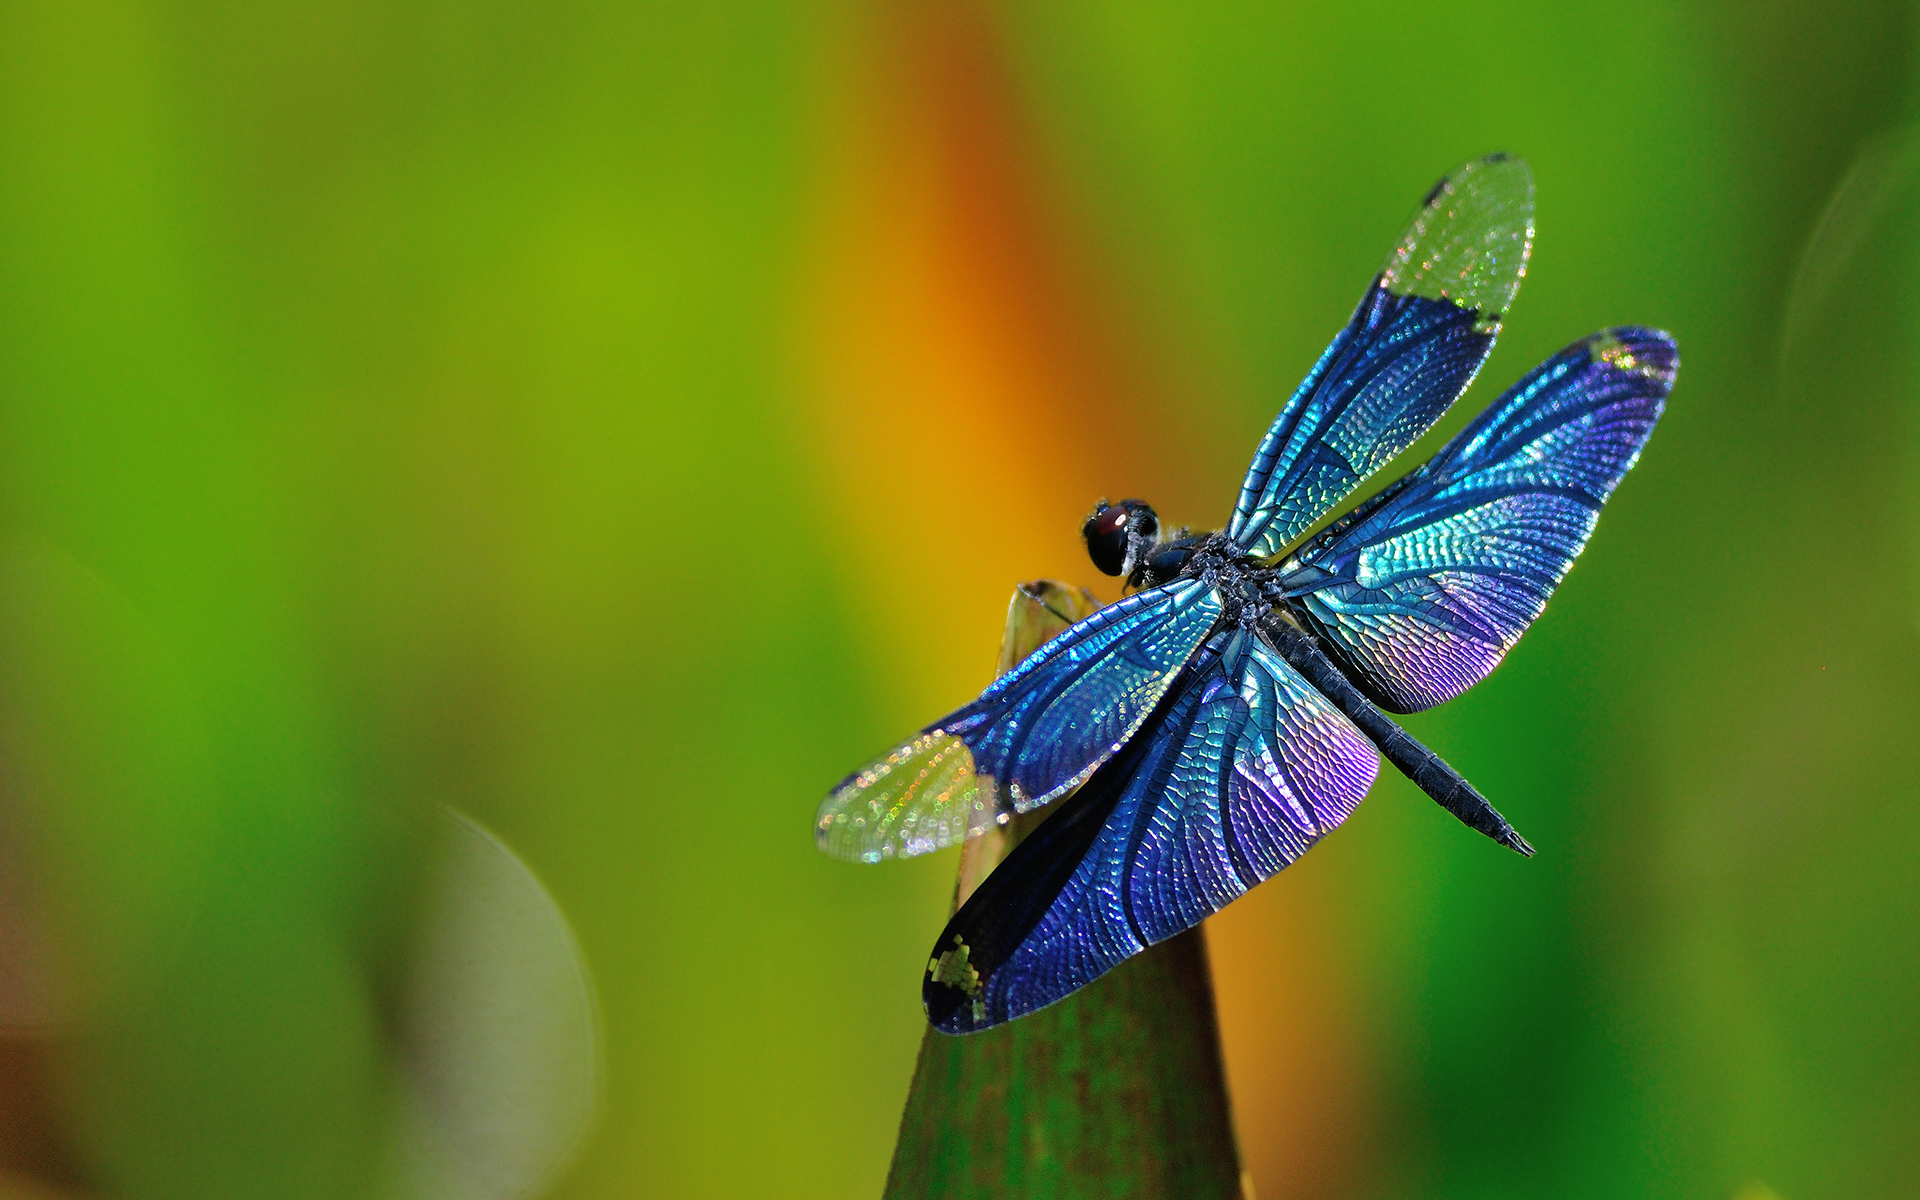 WHY THE DRAGONFLY? - The Dragonfly has a very special meaning to our family. After my father passed away, the dragonfly became symbolic of his presence. Everytime we would see a dragonfly we would think he was watching over us. A few years later, after doing some research on dragonflies and their symbolism, I couldn't believe my eyes as I read the below paragraph. I felt it captured the spirit of our children, specifically my son Jack and the journey he was facing with Autism.The dragonfly, in almost every part of the world, symbolizes change in the perspective of self realization. The metamorphic act of emergence from nymph to dragonfly strips away our beliefs of containment, our limitations, and our self doubt.The spirit of the dragonfly reminds us that everything is possible! We can achieve our dreams and our goals. We can learn to understand about ourselves, and our self belief.The dragonfly spirit is the keeper of our dreams, seeking out true potential and ability, giving us the capability to fulfill our dreams.